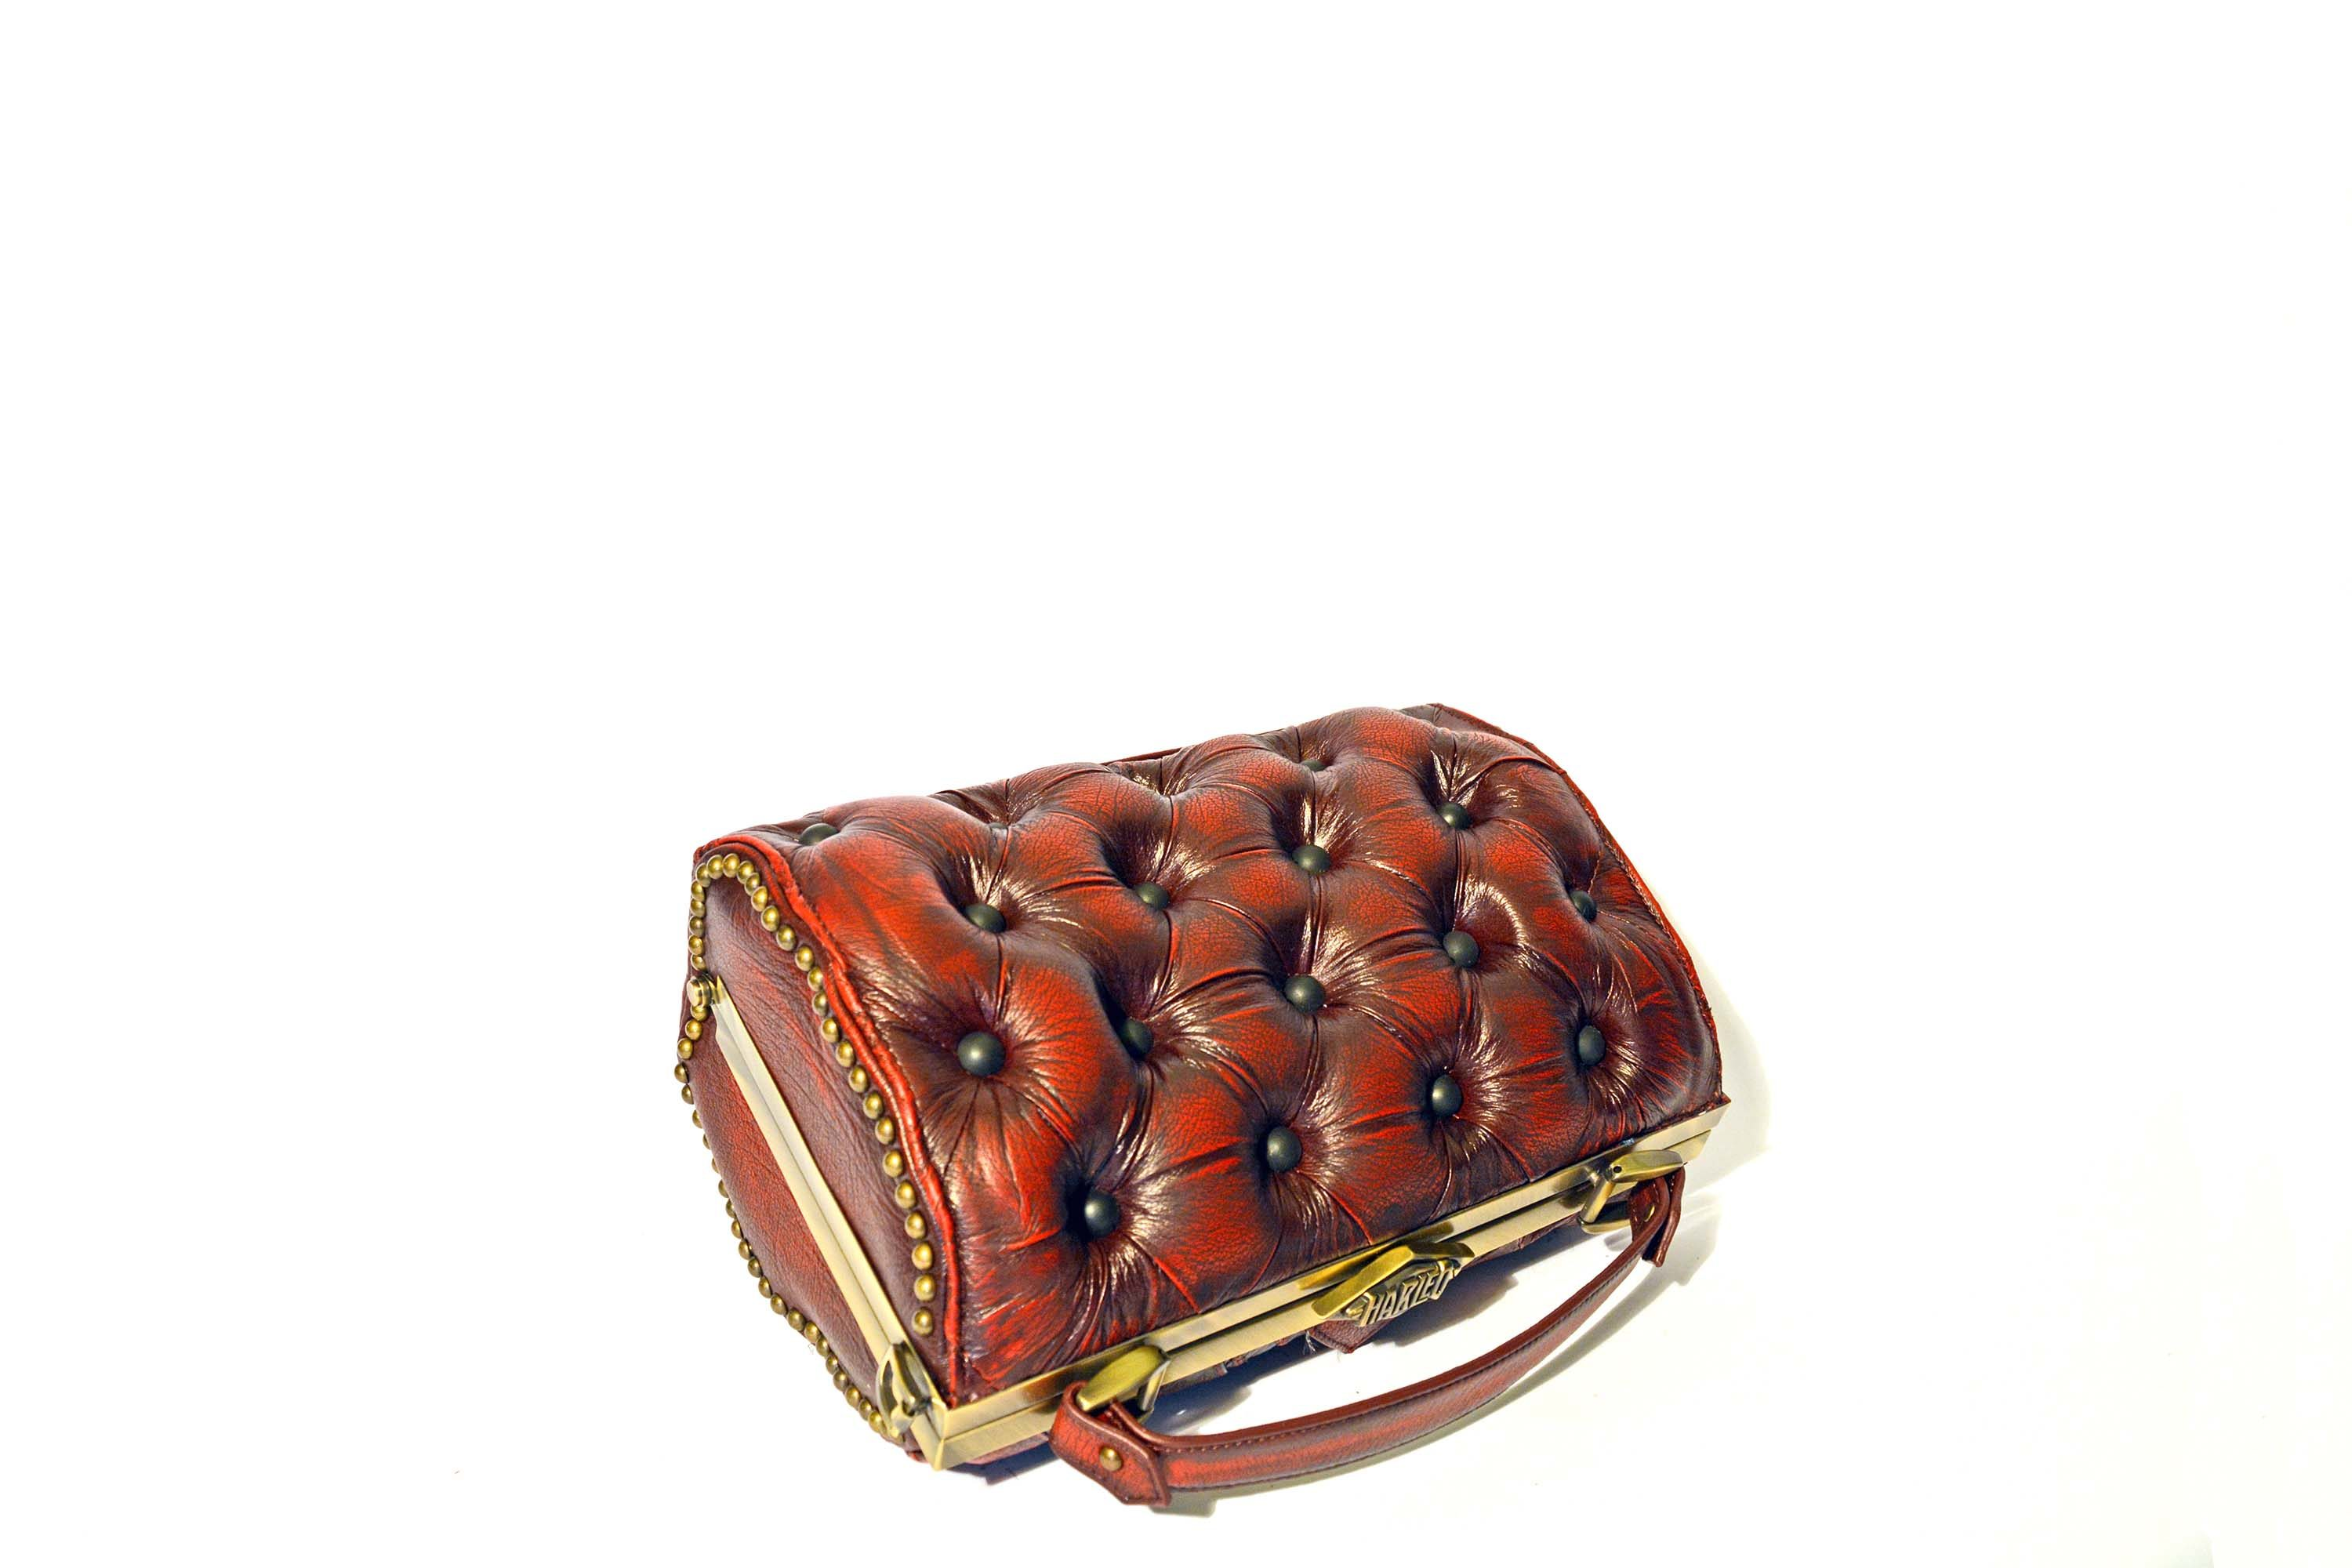 red-leather-bag-vintage-harleq